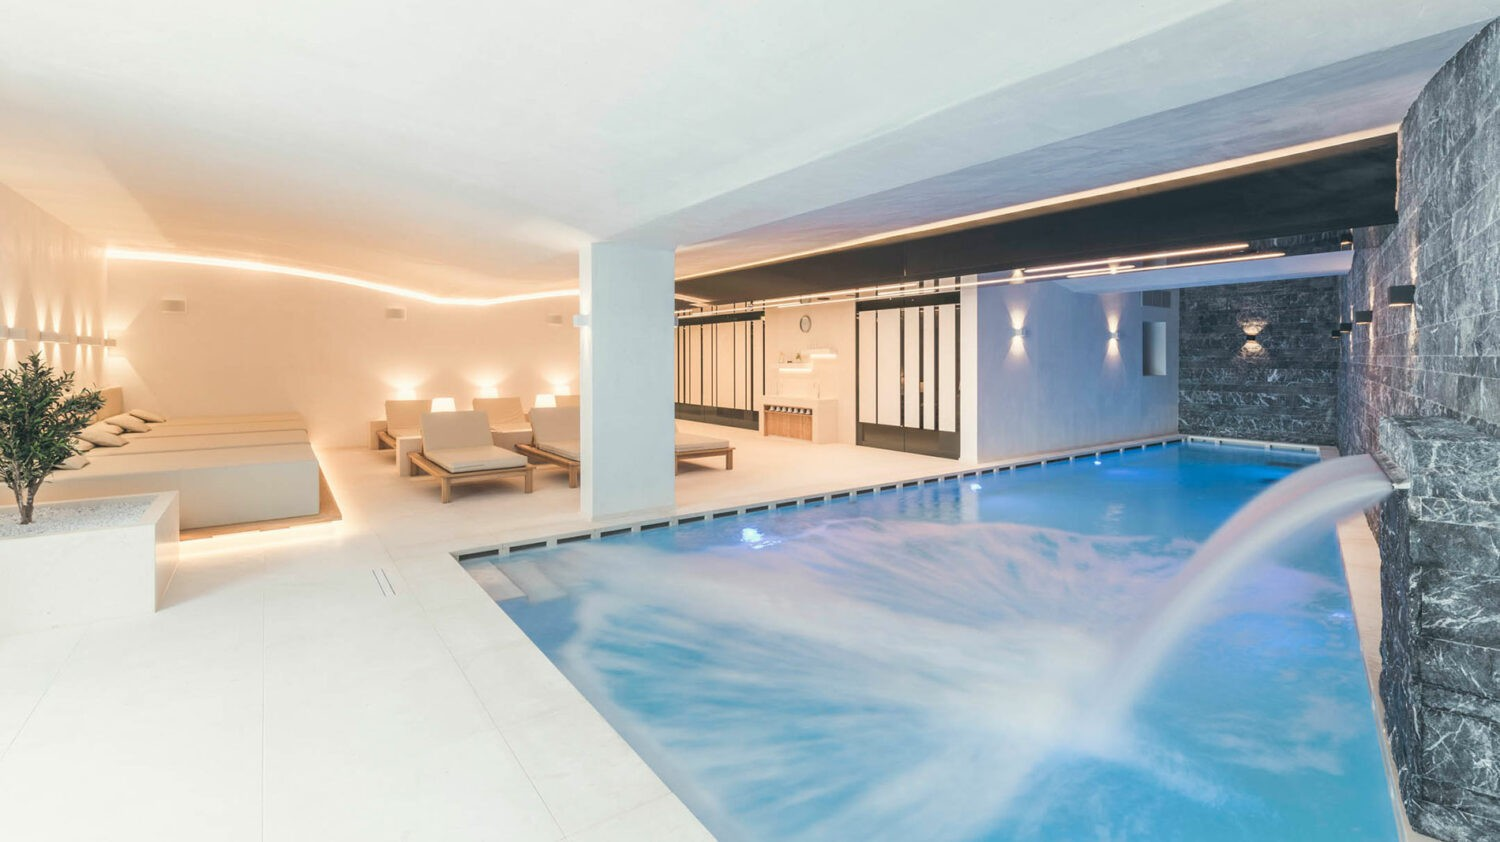 schlosshotel-ischgl-indoor-pool